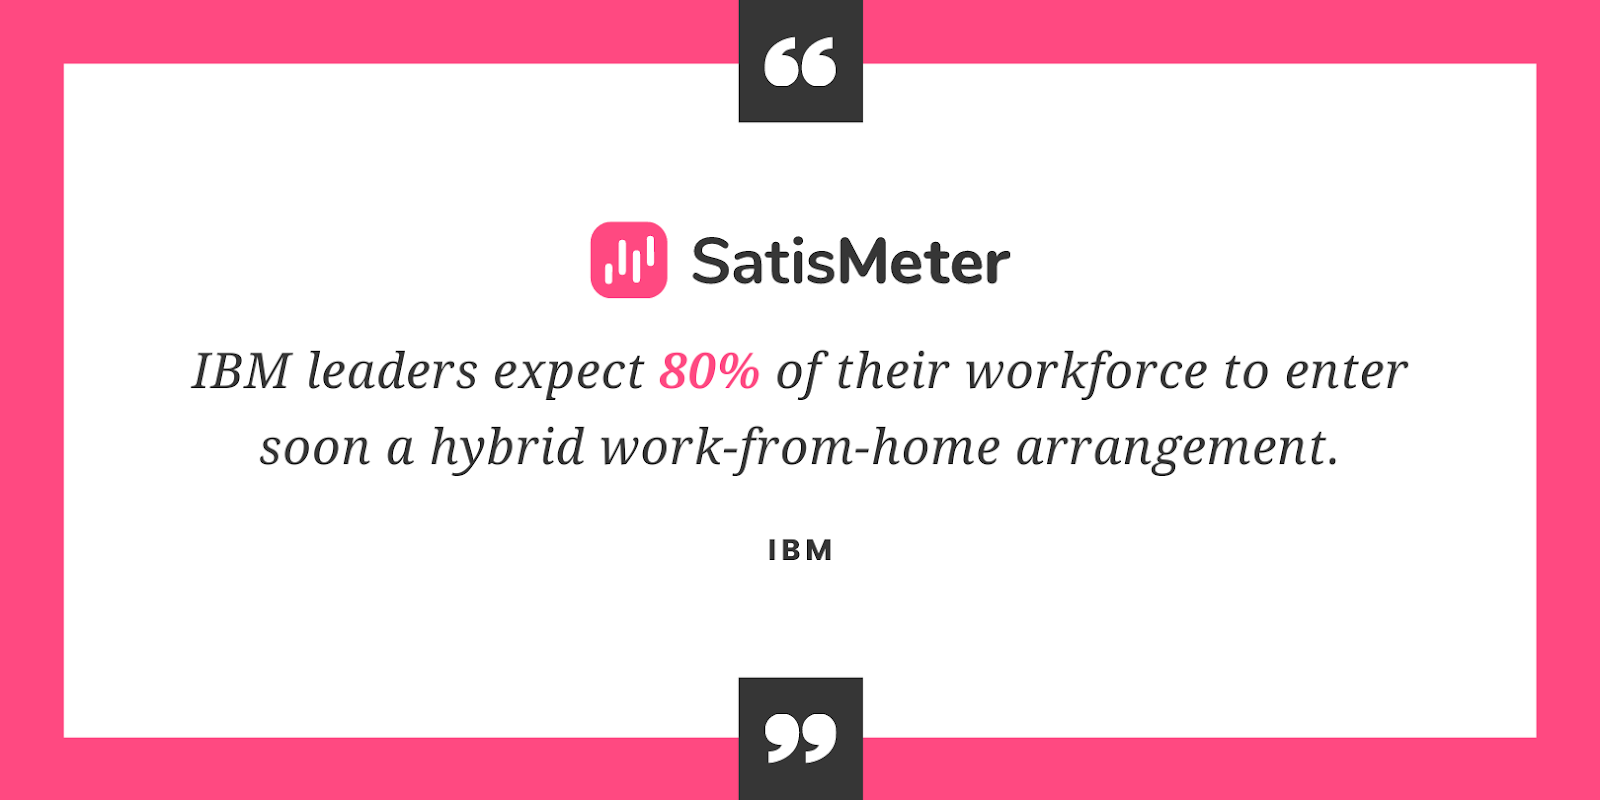 IBM leaders expect 80% of their workforce to enter a hybrid work-from-home arrangement.